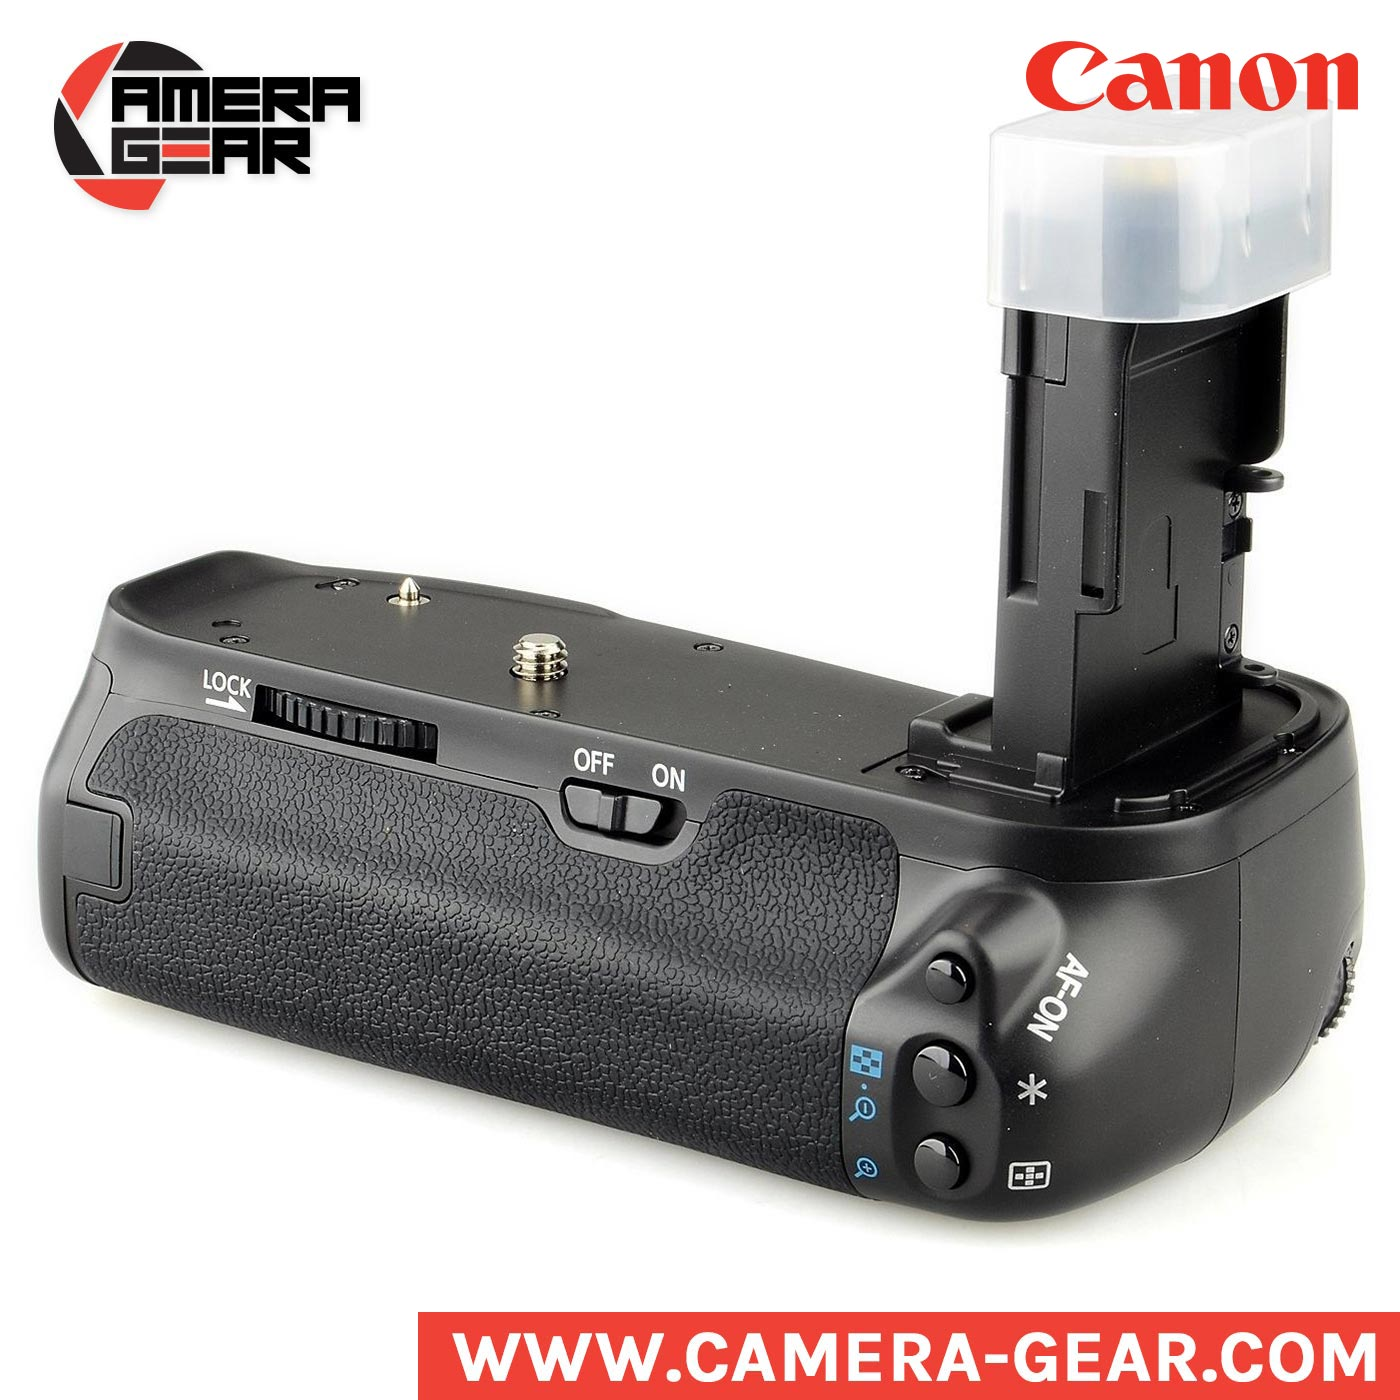 da80d667fe3566 Meike MK-6D battery Grip. Great bg-e13 repacement battery grip for canon.  Meike MK-6D battery Grip. Great bg-e13 repacement battery grip for canon